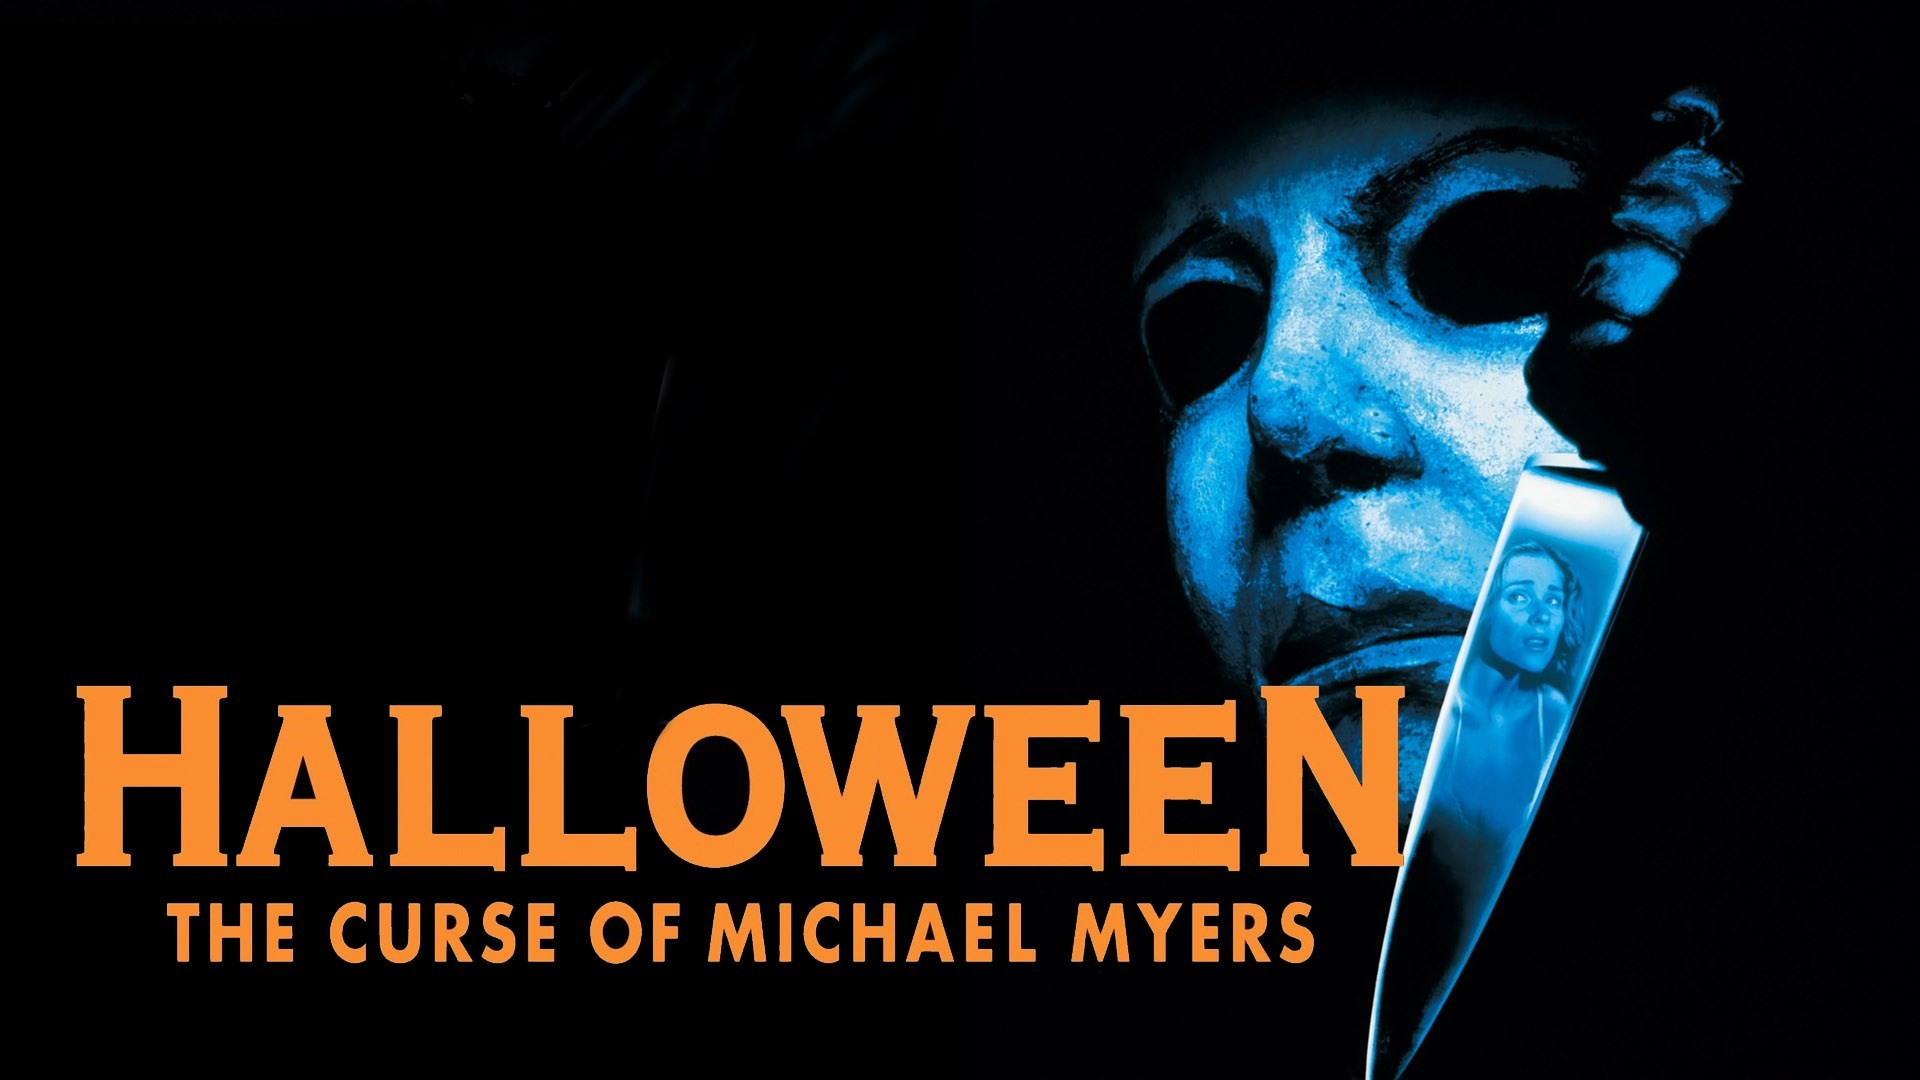 1920x1080 halloween-the-curse-of-michael-myers-wallpaper